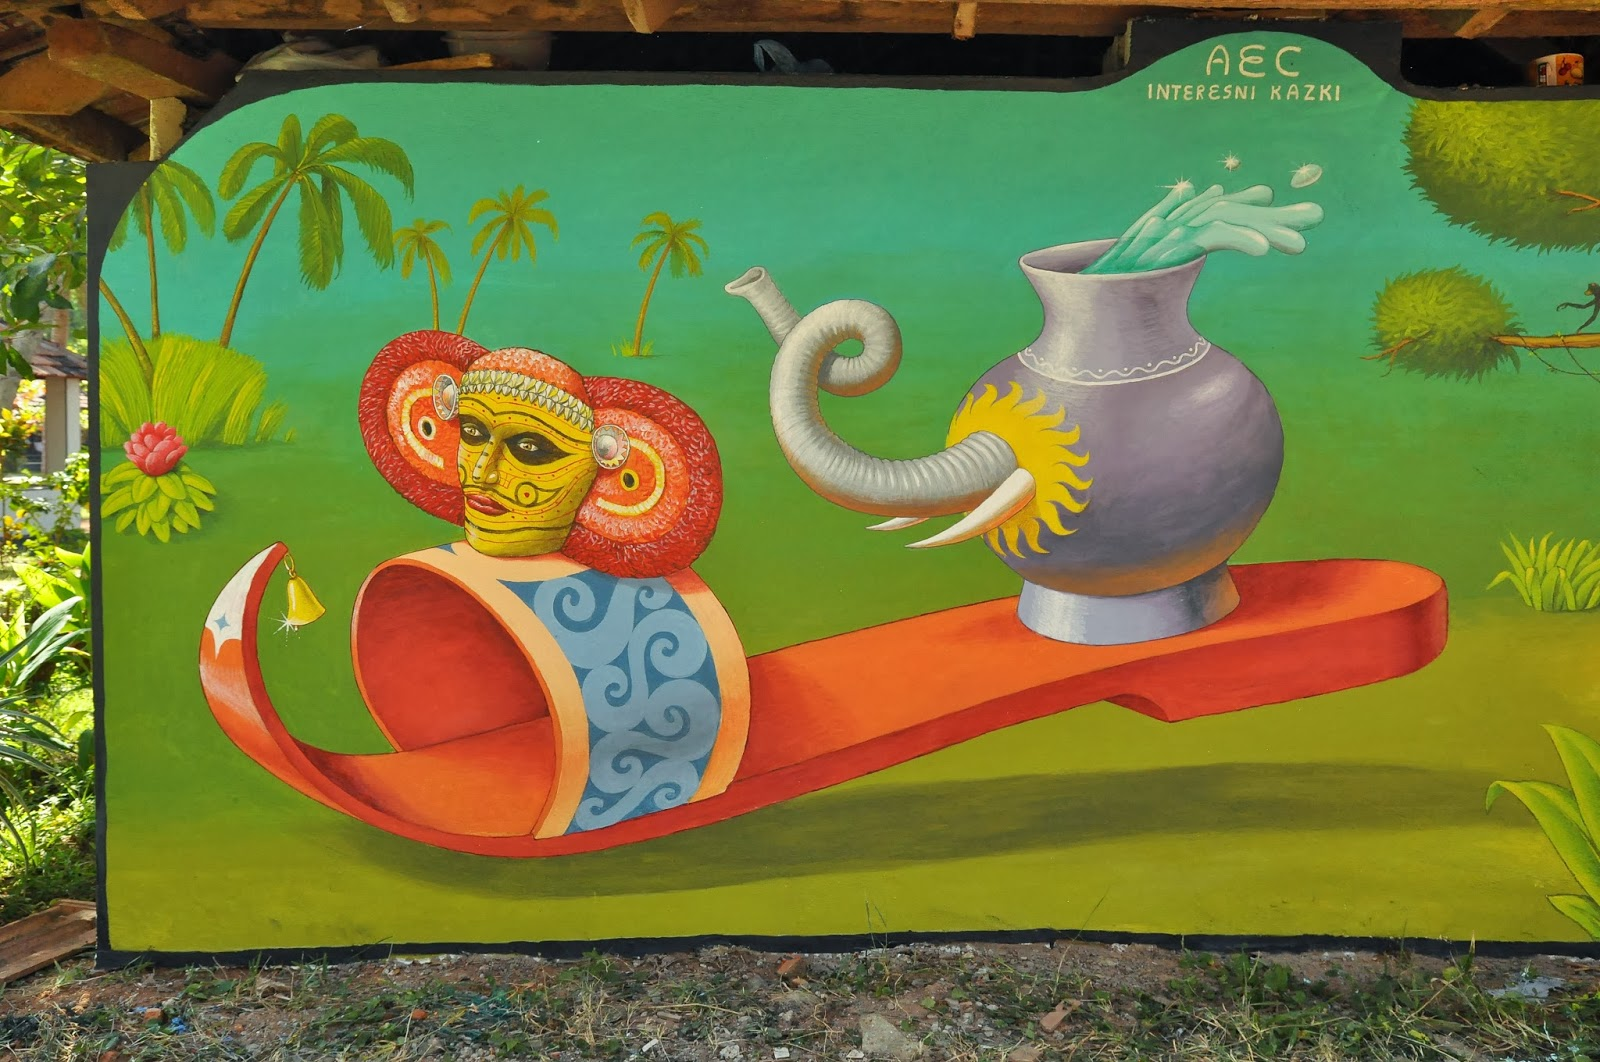 interesni-kazki-holy-slipper-new-mural-in-india-02